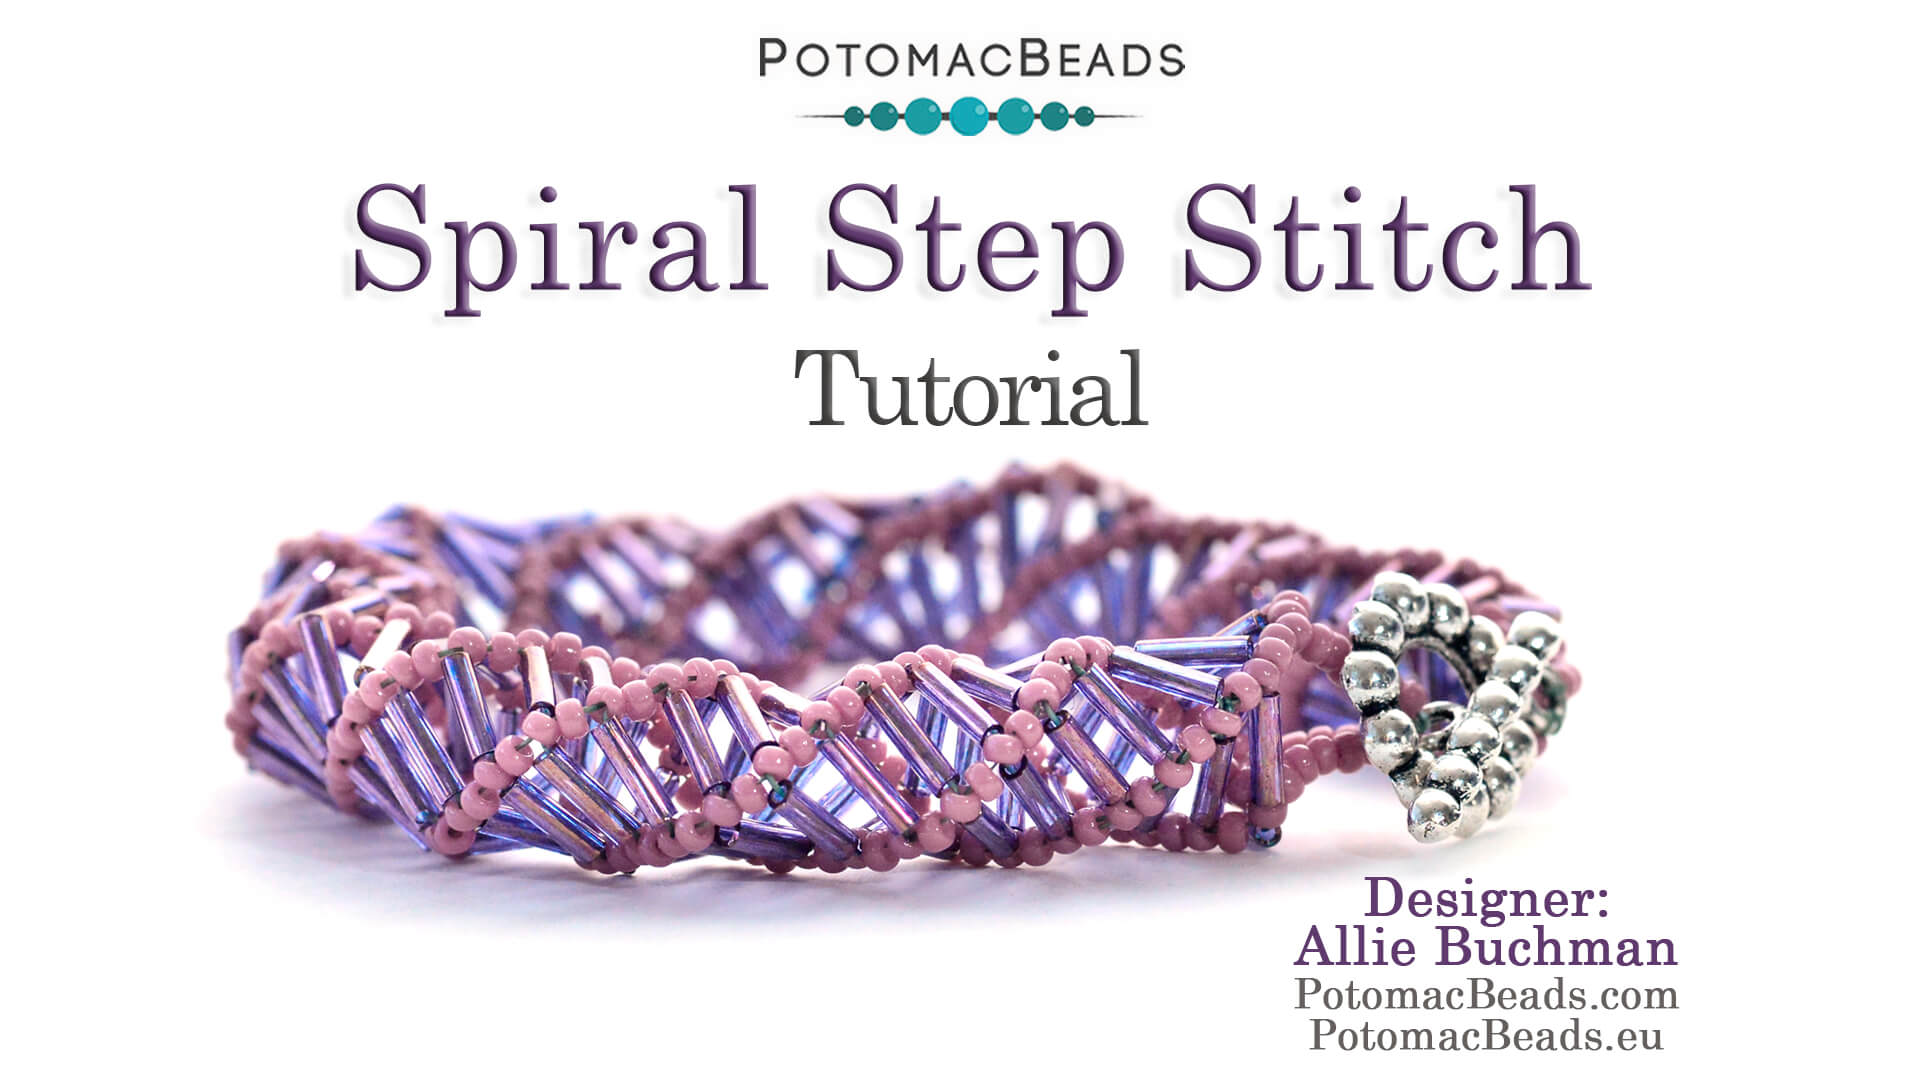 How to Bead Jewelry / Videos Sorted by Beads / Seed Bead Only Videos / Spiral Step Jewelry Tutorial